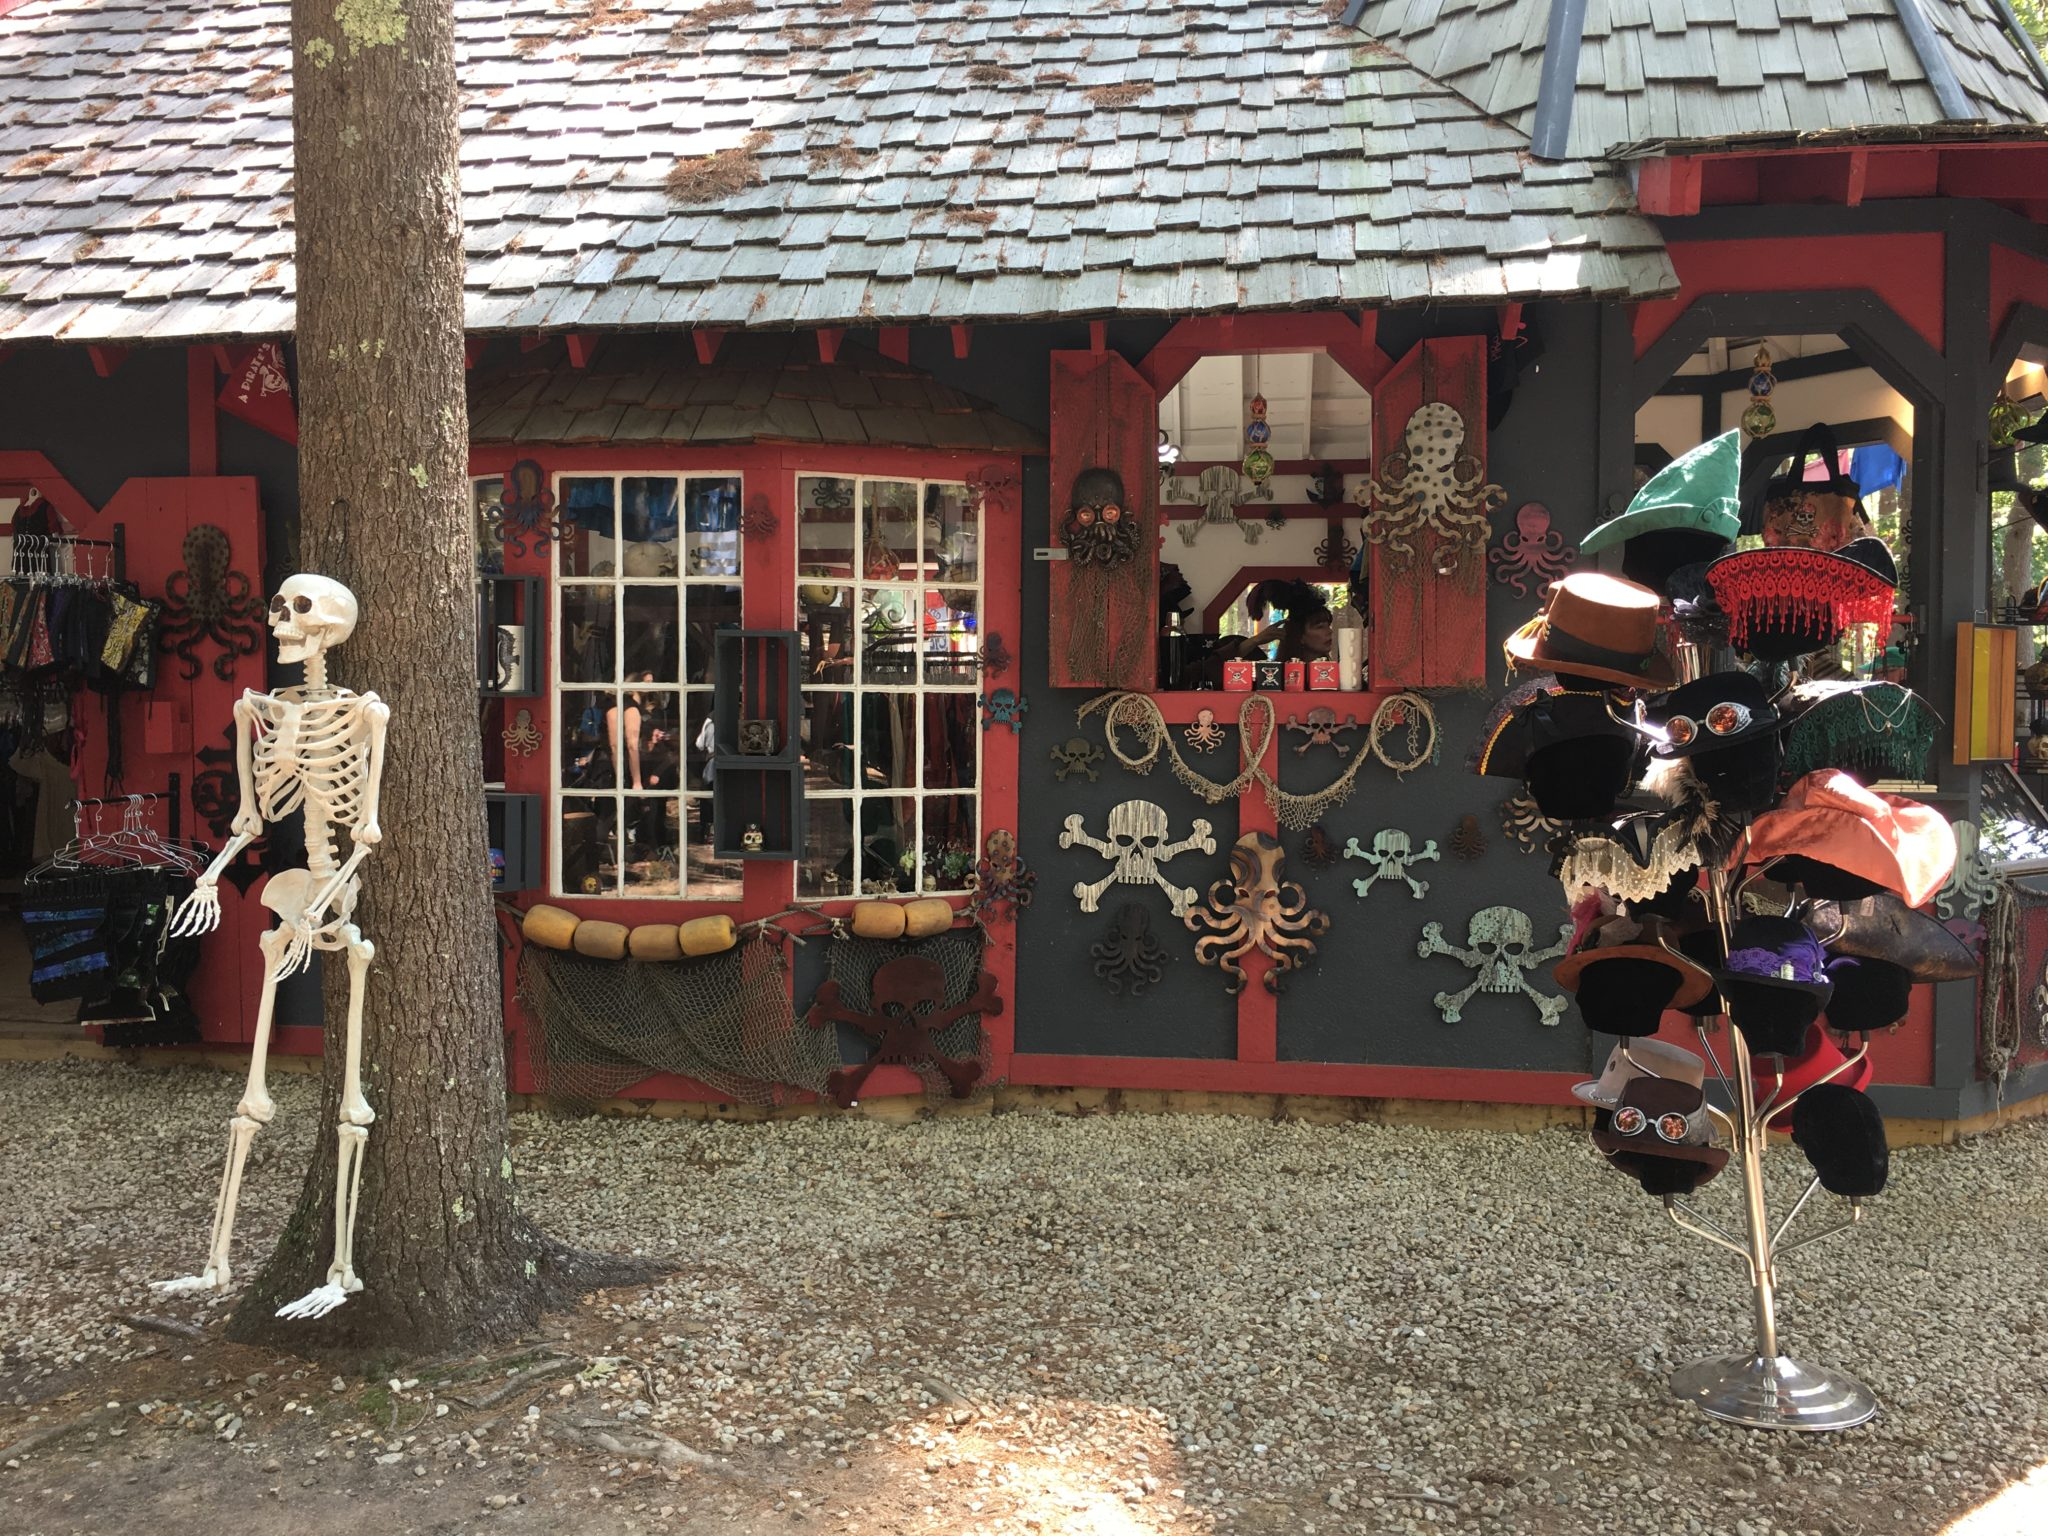 Handmade artisans sell lots of wonderful goods at King Richard's Faire.